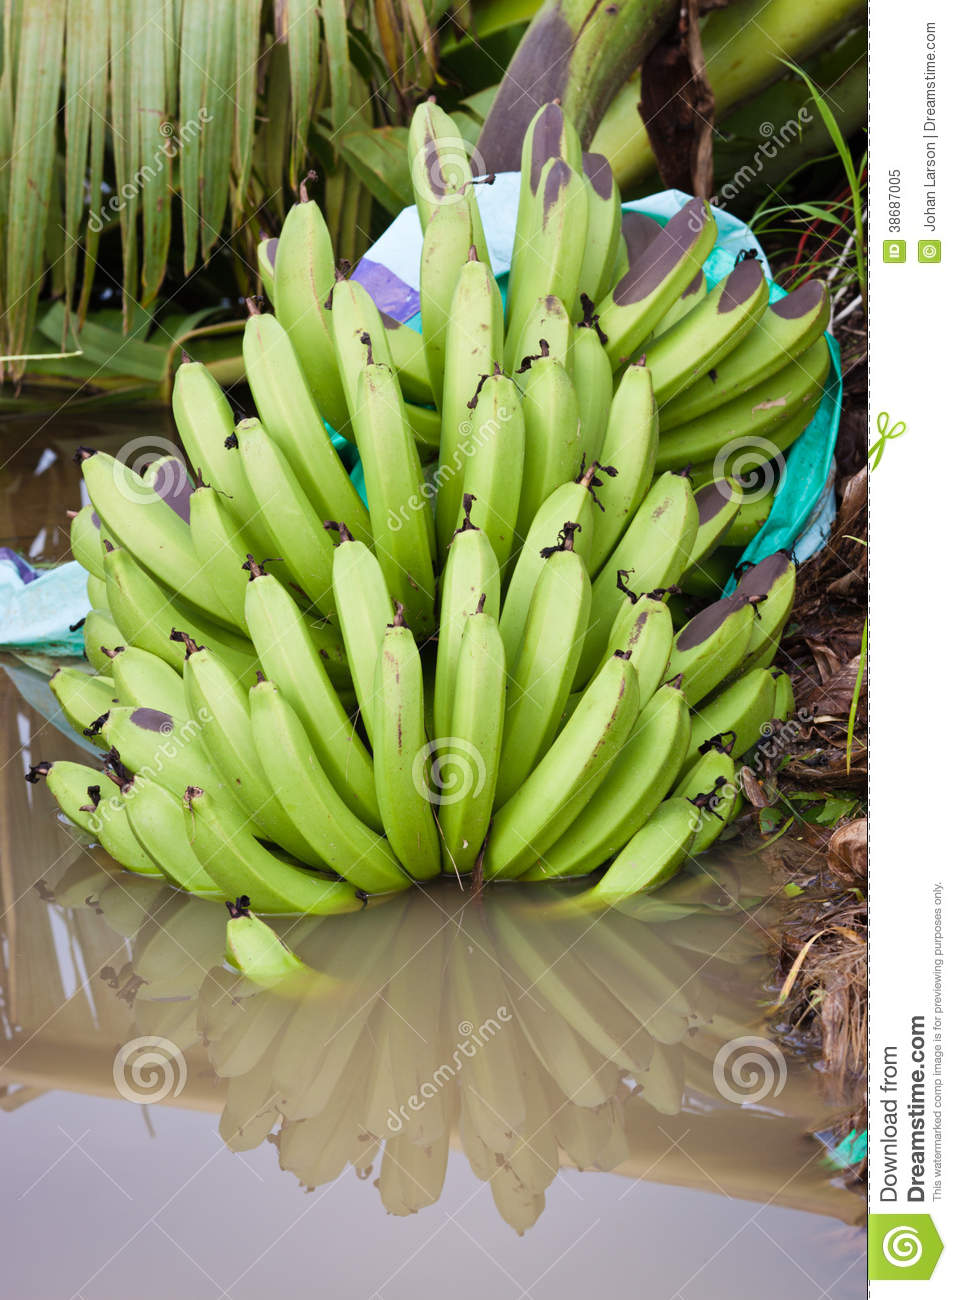 Bunch of banananas fallen to the ground